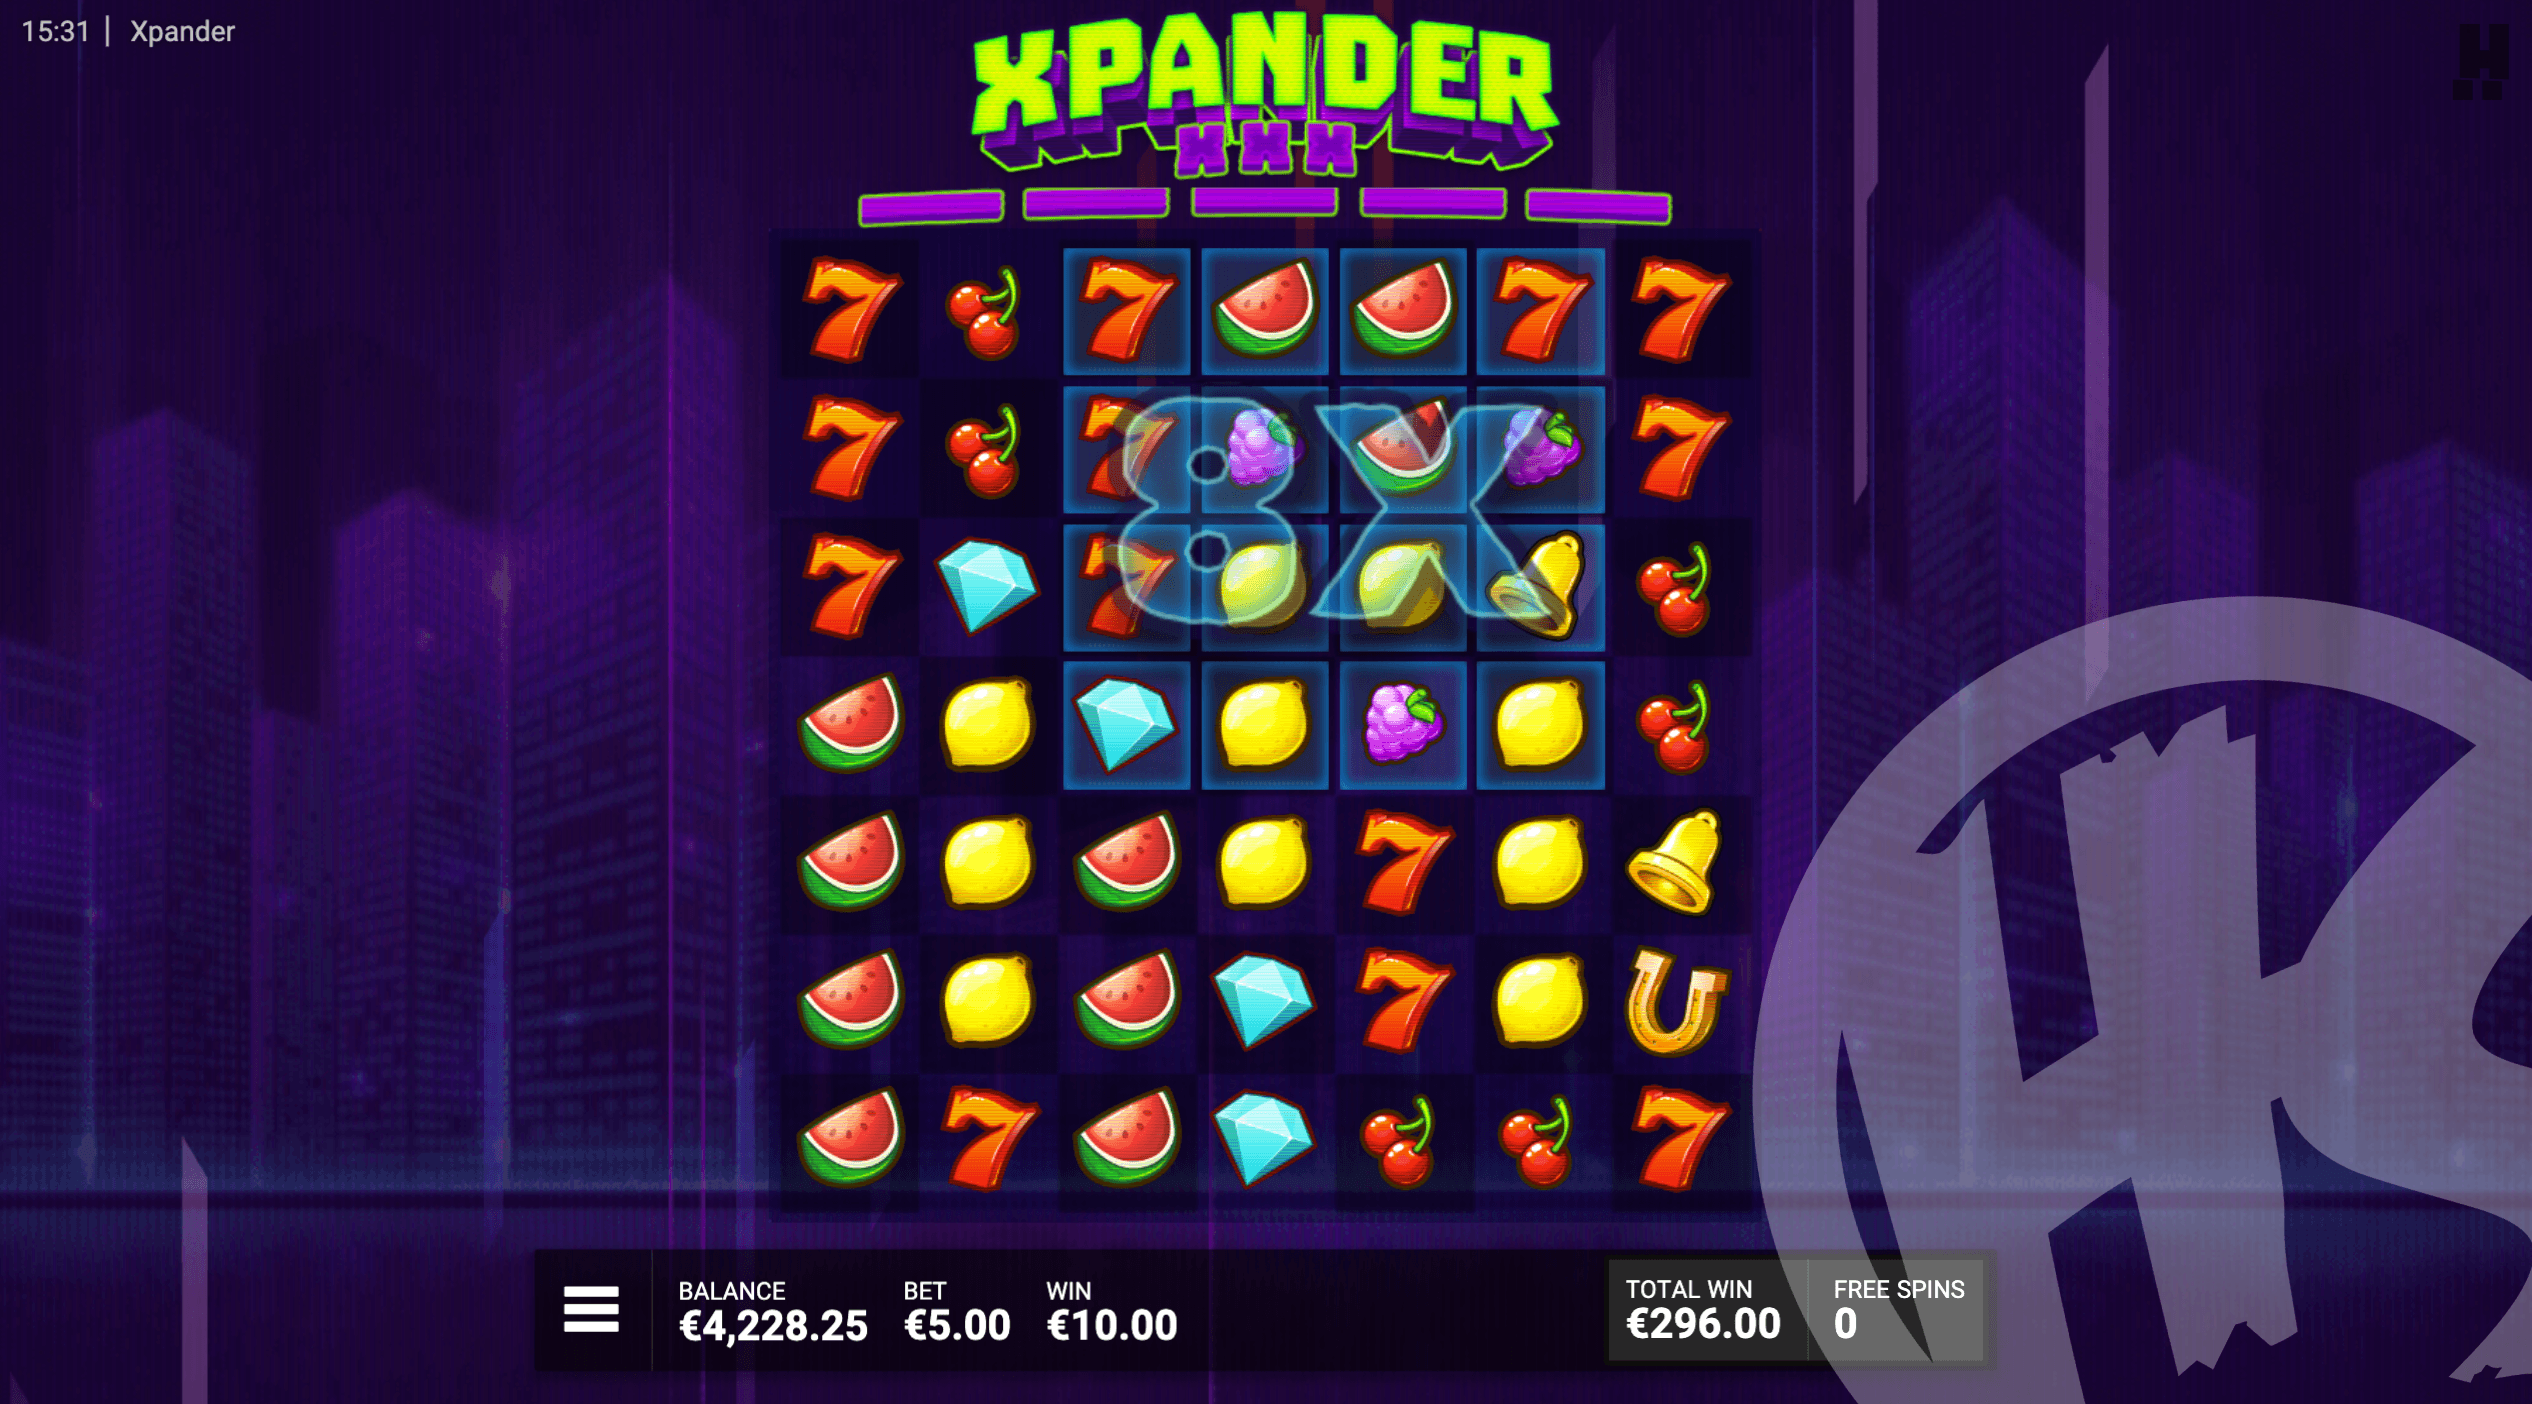 Xpander Free Spins